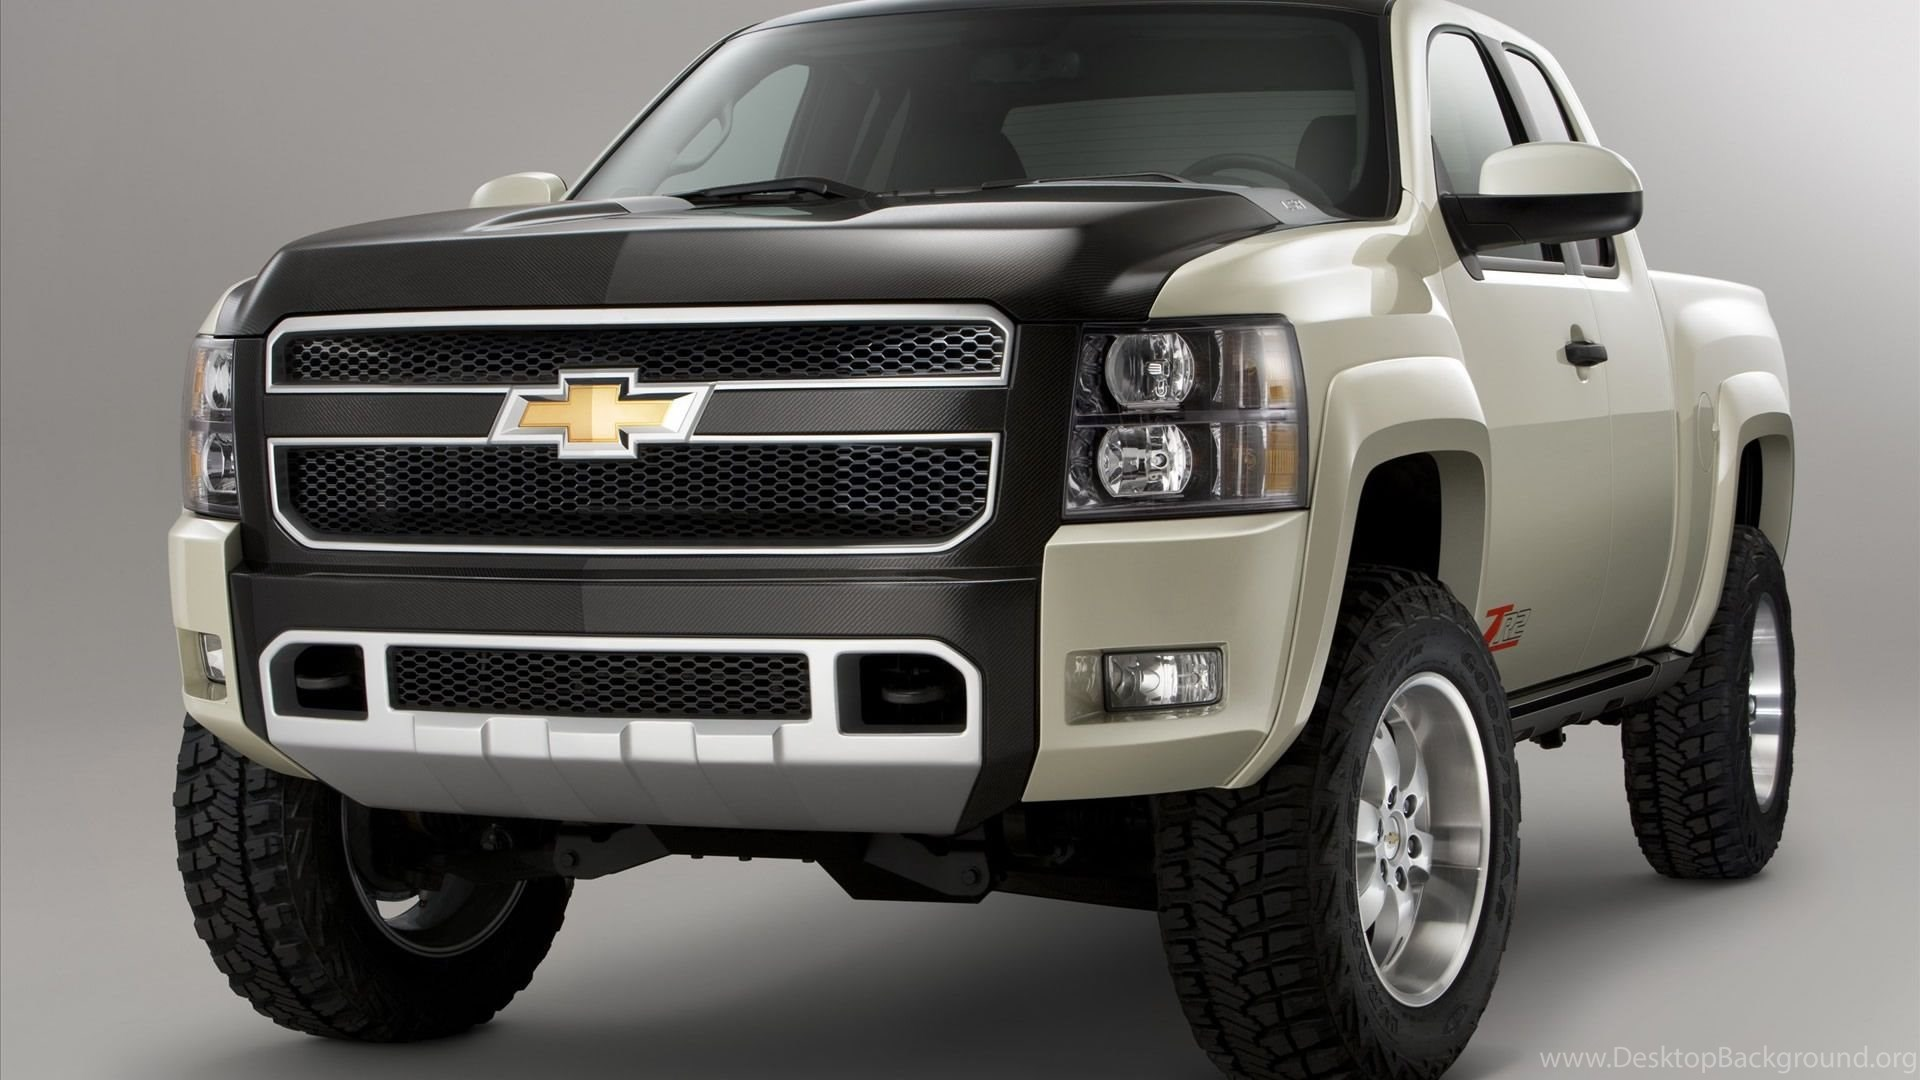 Chevy Logo Wallpapers Camo Image Desktop Background